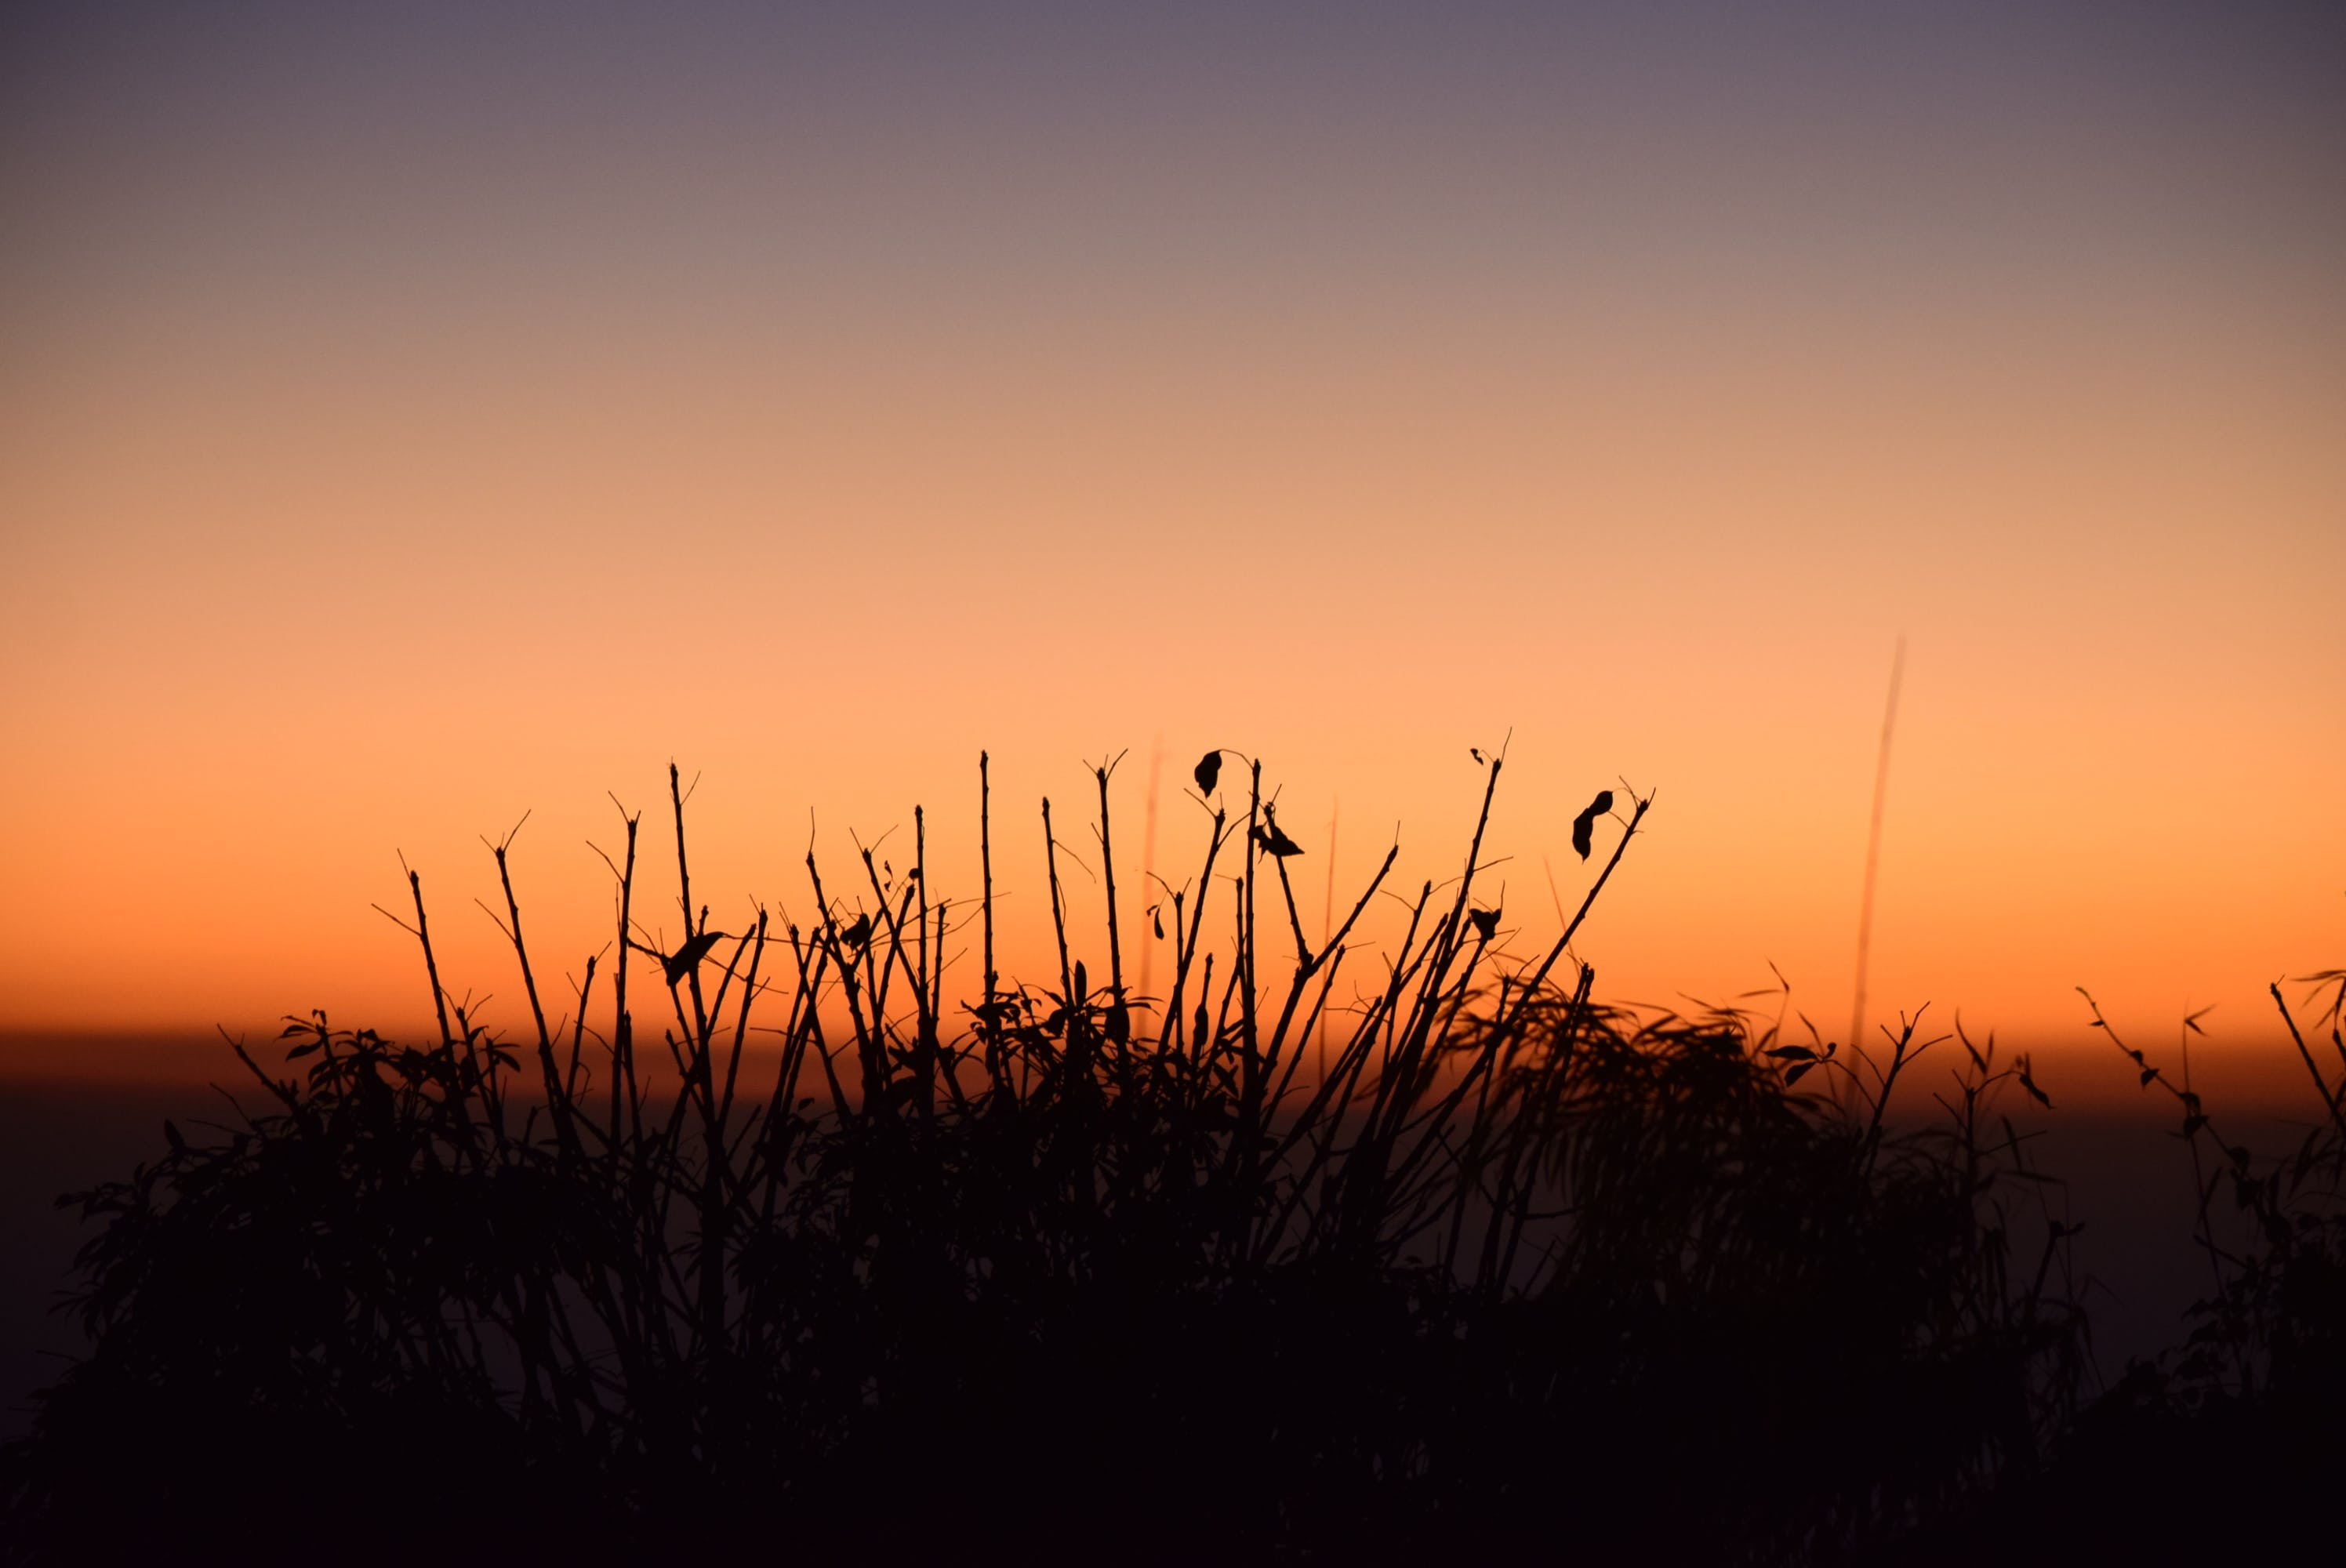 Silhouette Photo of Grass